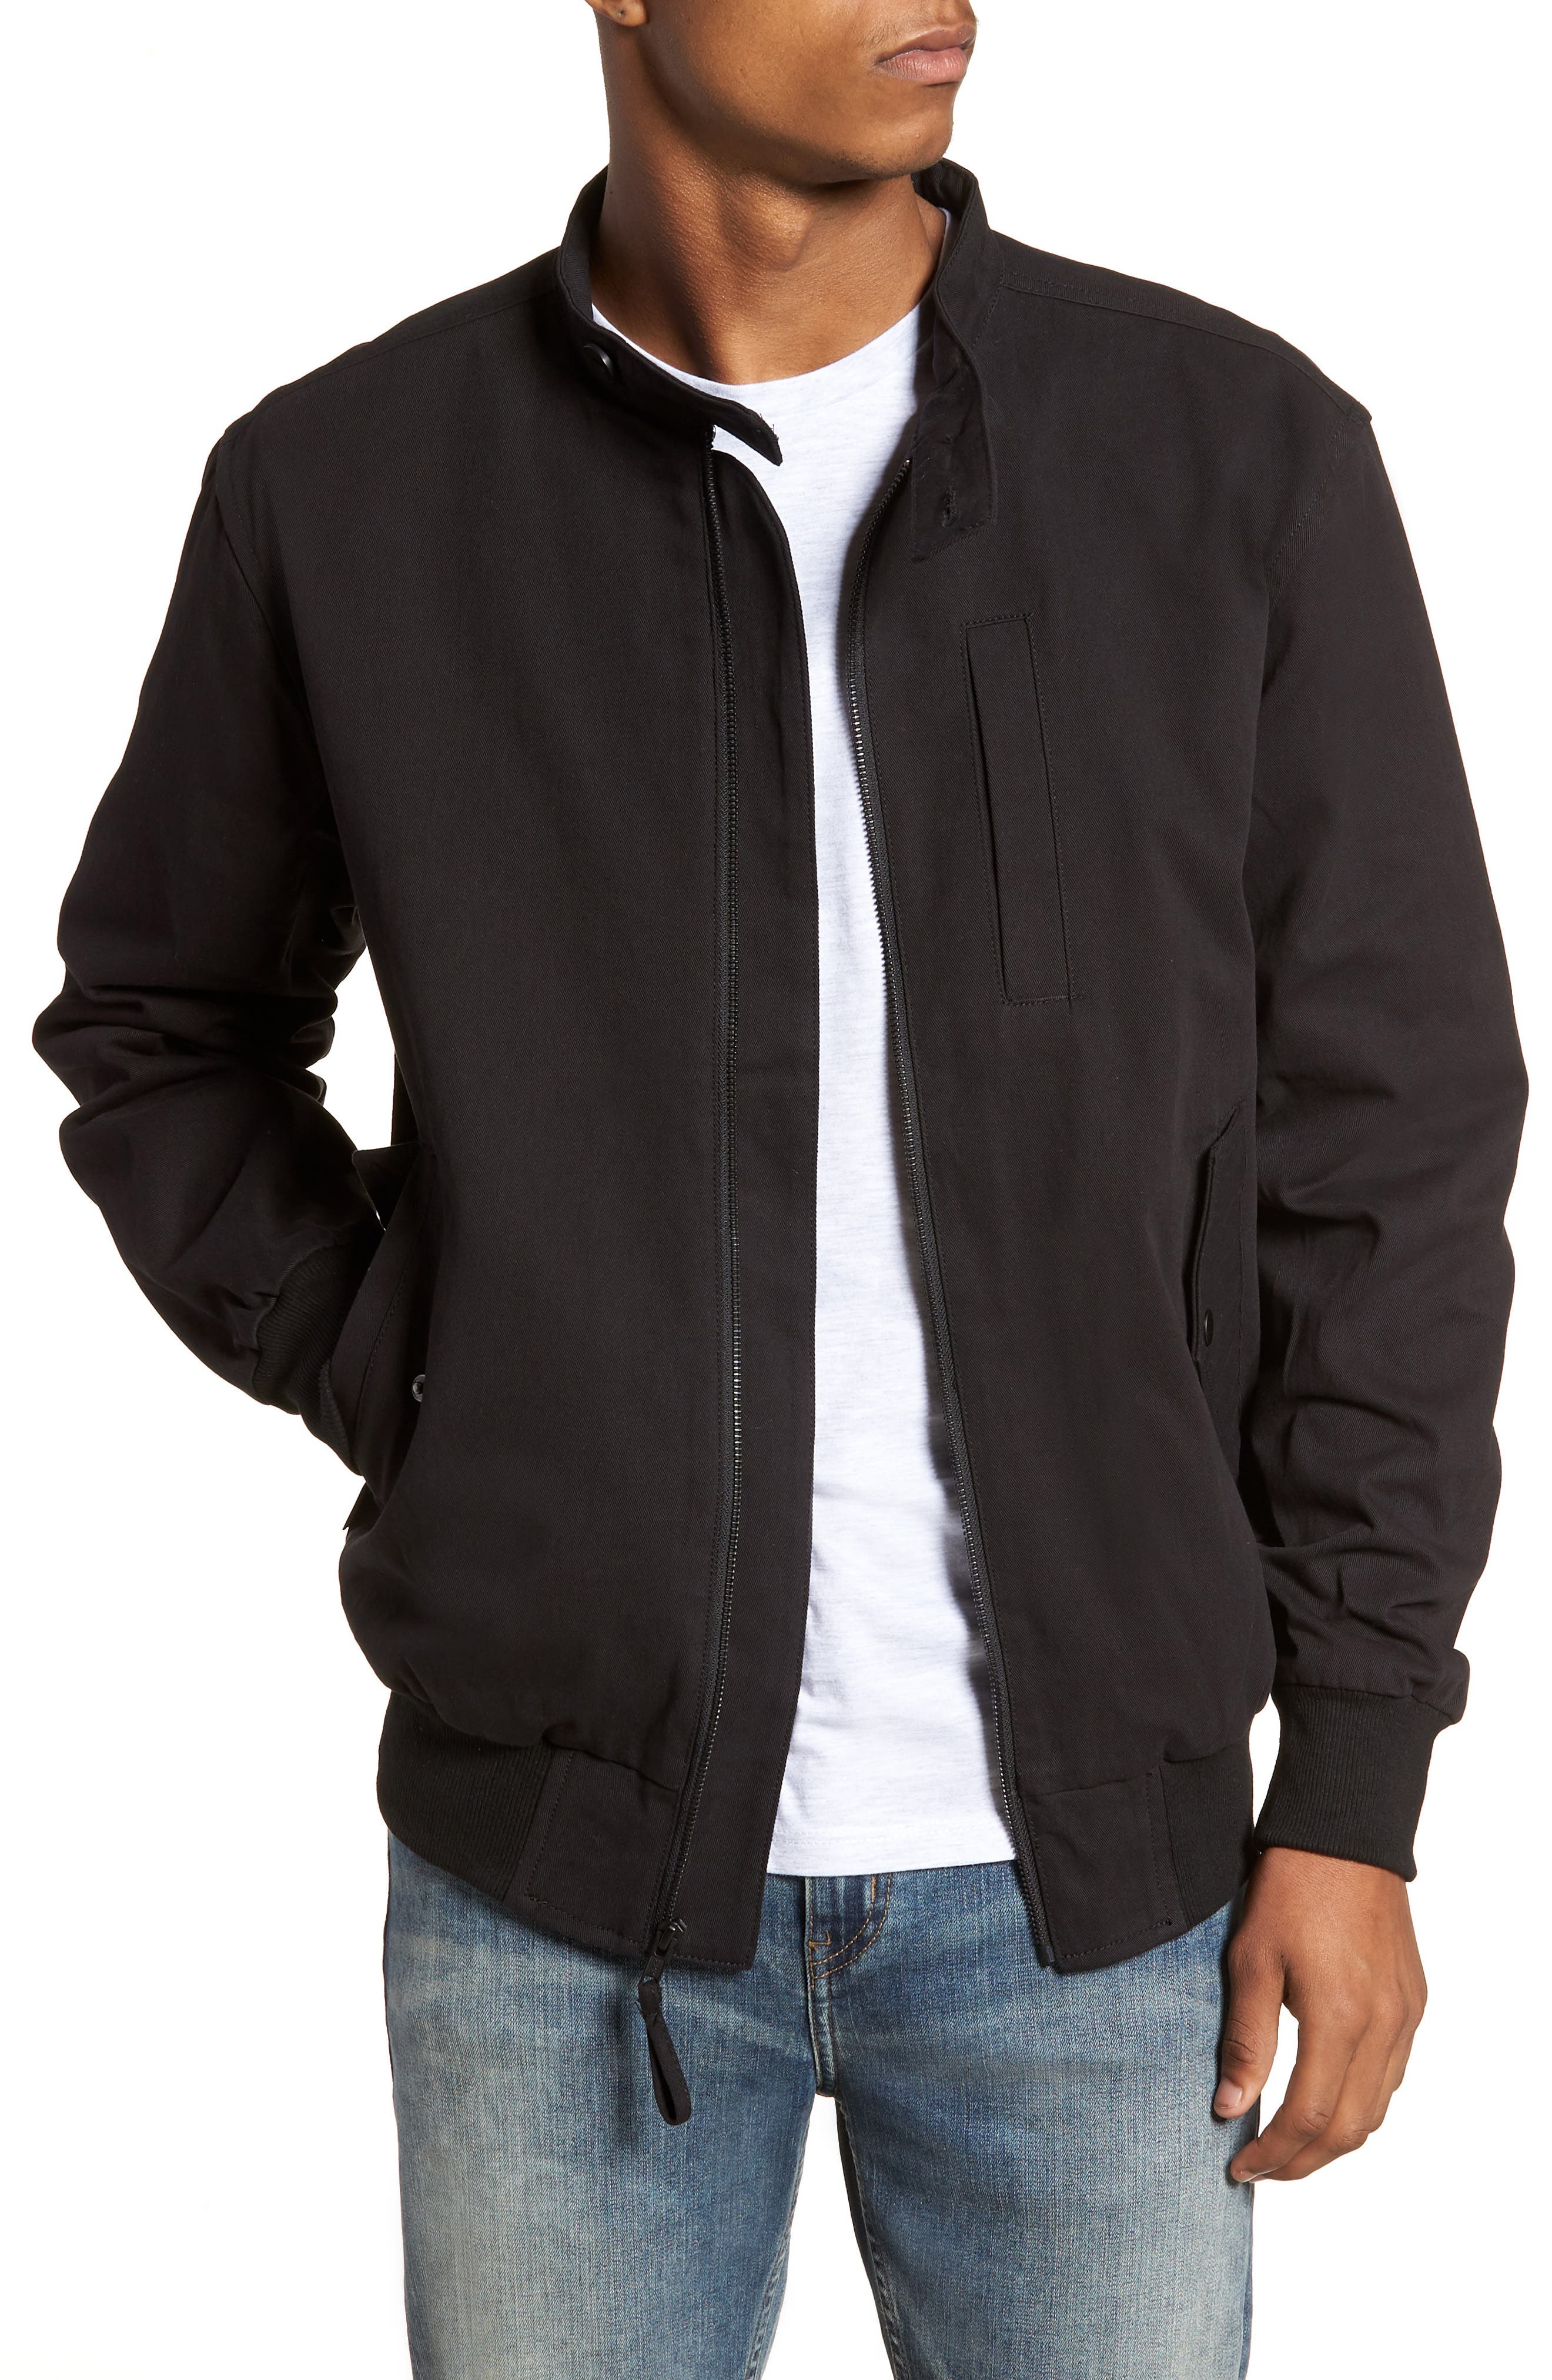 Dotson Twill Bomber Jacket,                             Main thumbnail 1, color,                             001